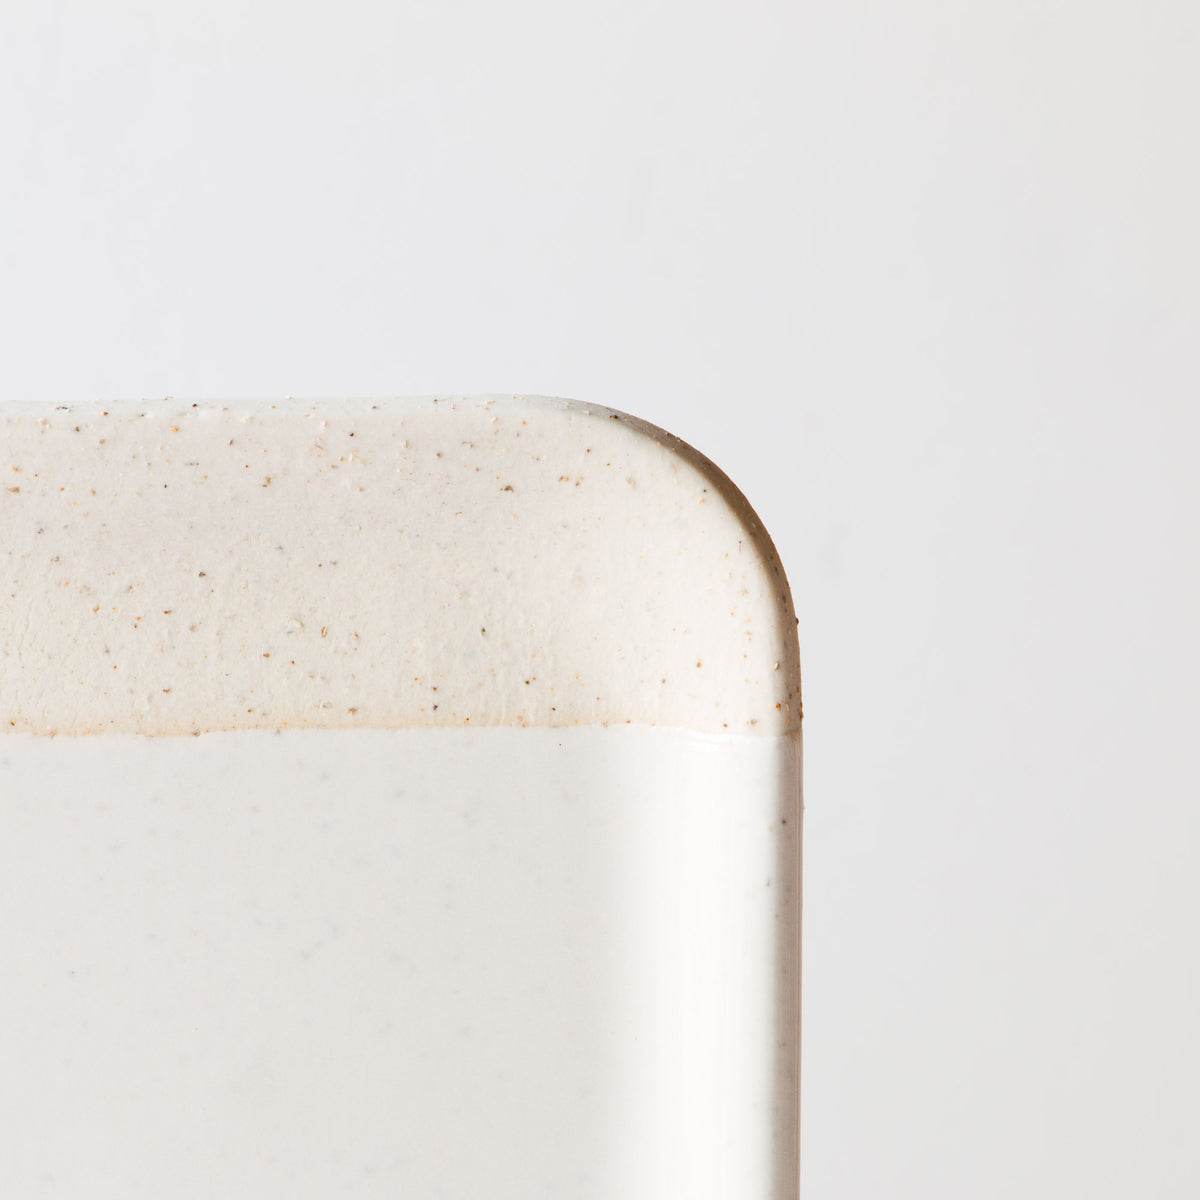 Detailed View - Oatmeal Clay - Soft White Glaze - Handmade Ceramic Small Square Serving Board